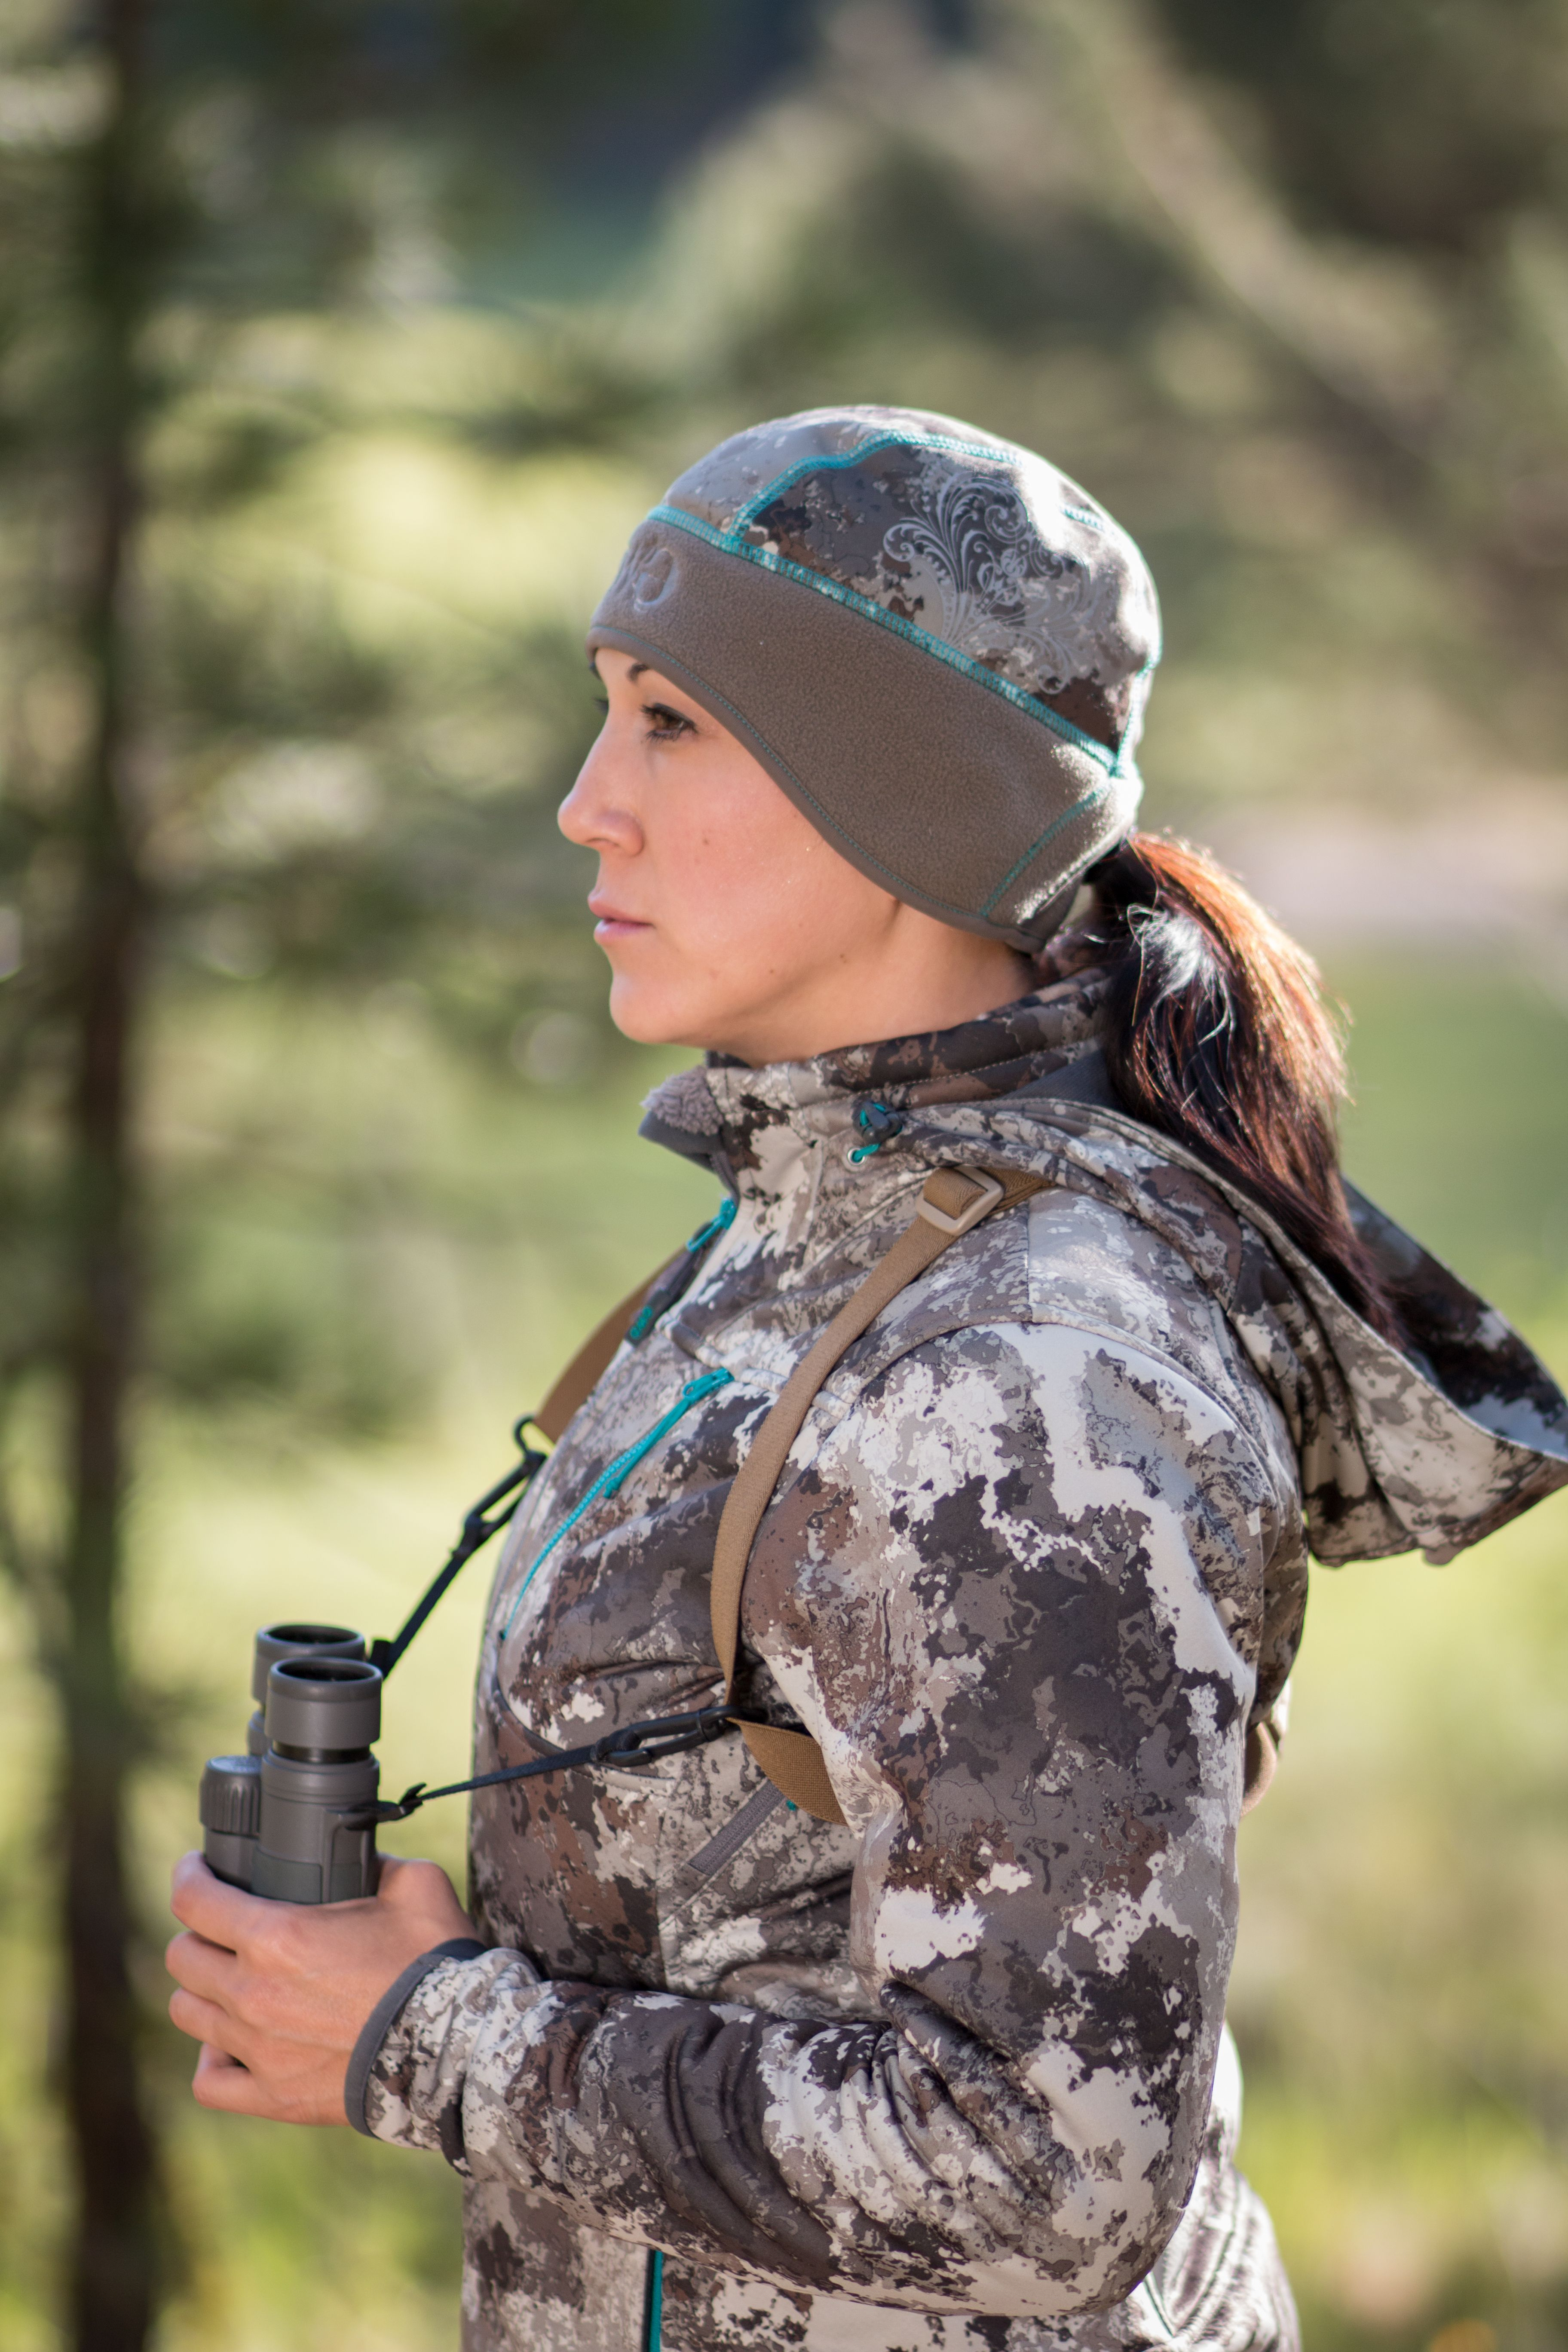 840a5cc115 The Girls With Guns Clothing Women s Hunting Line features the brand new  exclusive Alpine pattern